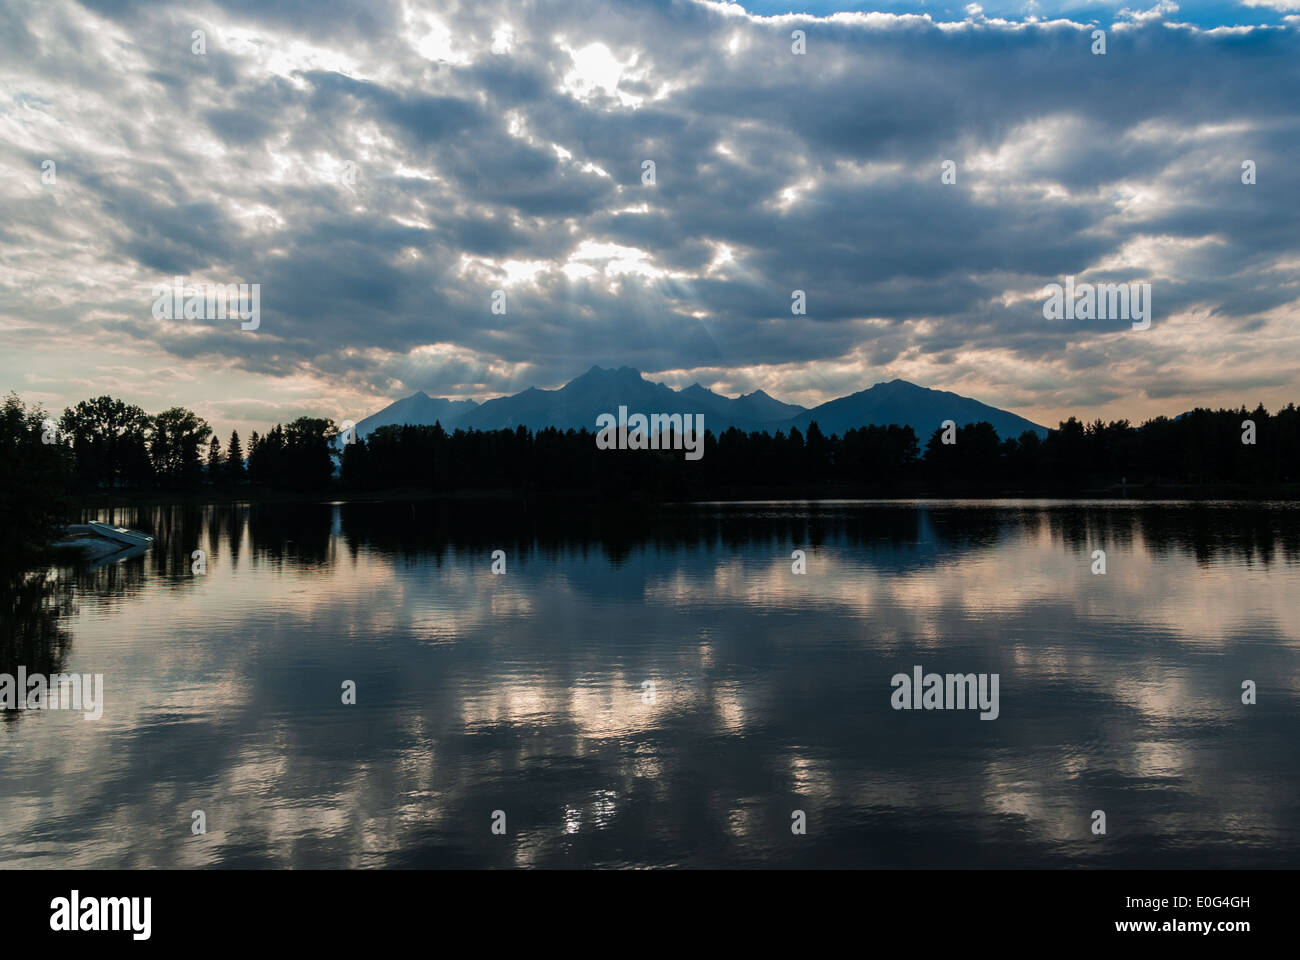 High Tatra (Tatra) Mountains visible from Bielinski Rybnik (Pond) at the sunset, near Spišská Belá (Spisska Bela), Slovakia - Stock Image